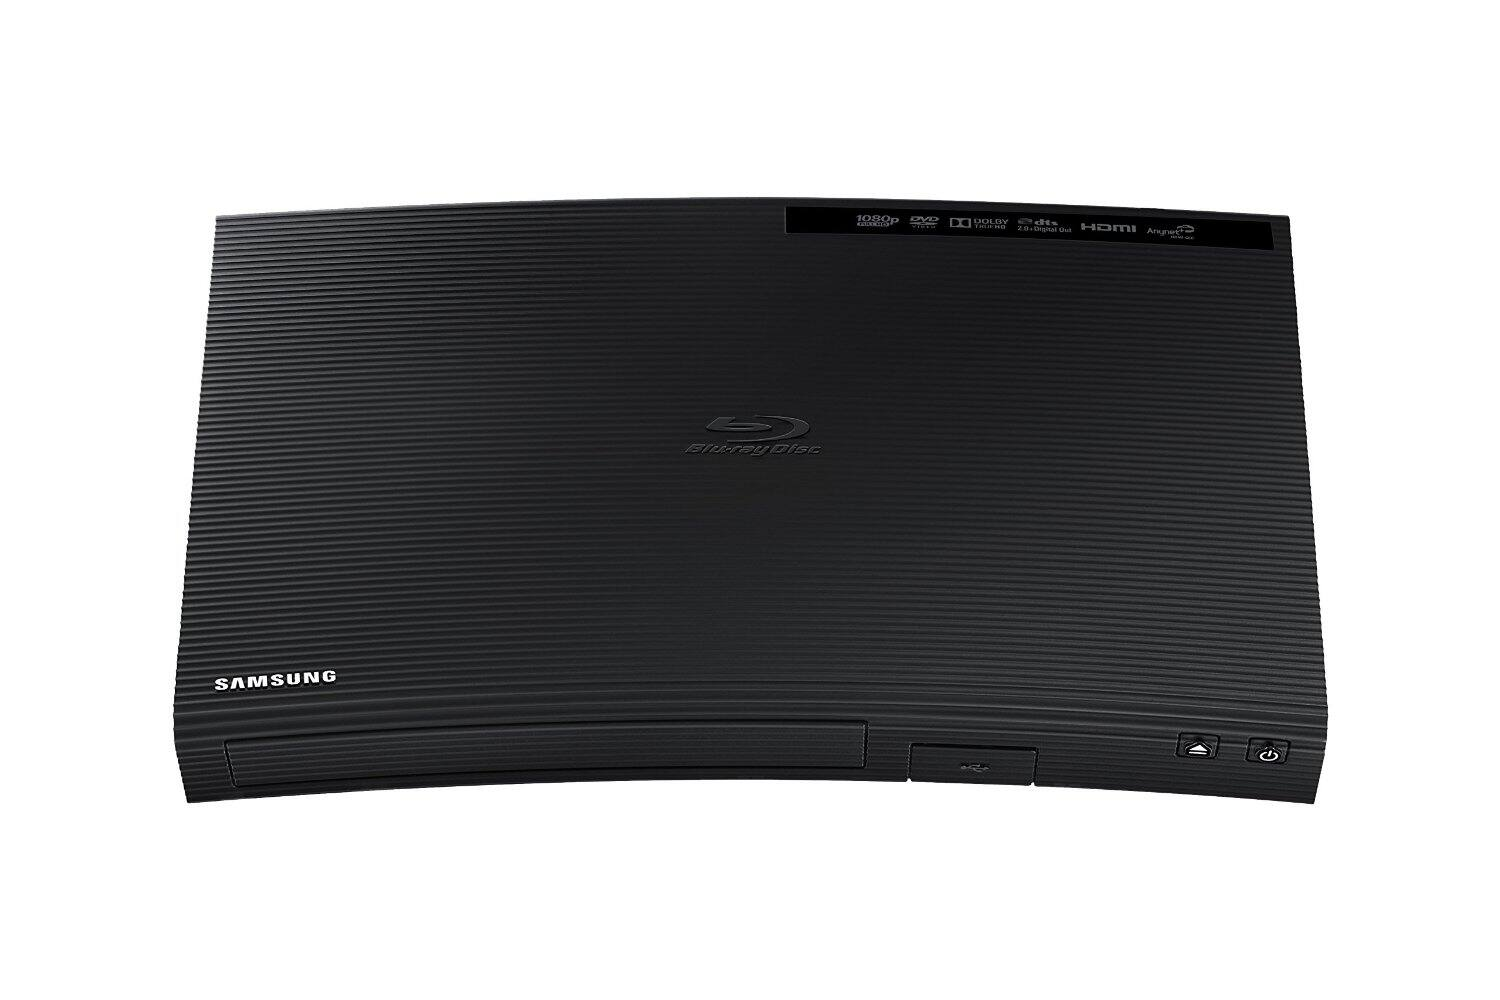 """Samsung BD-J5100 Curved Blu-ray Player (""""Used-Very Good"""" Condition, 2015 Model) from $23.60 at Amazon Warehouse Deals, Free ship with prime or on orders over $49"""